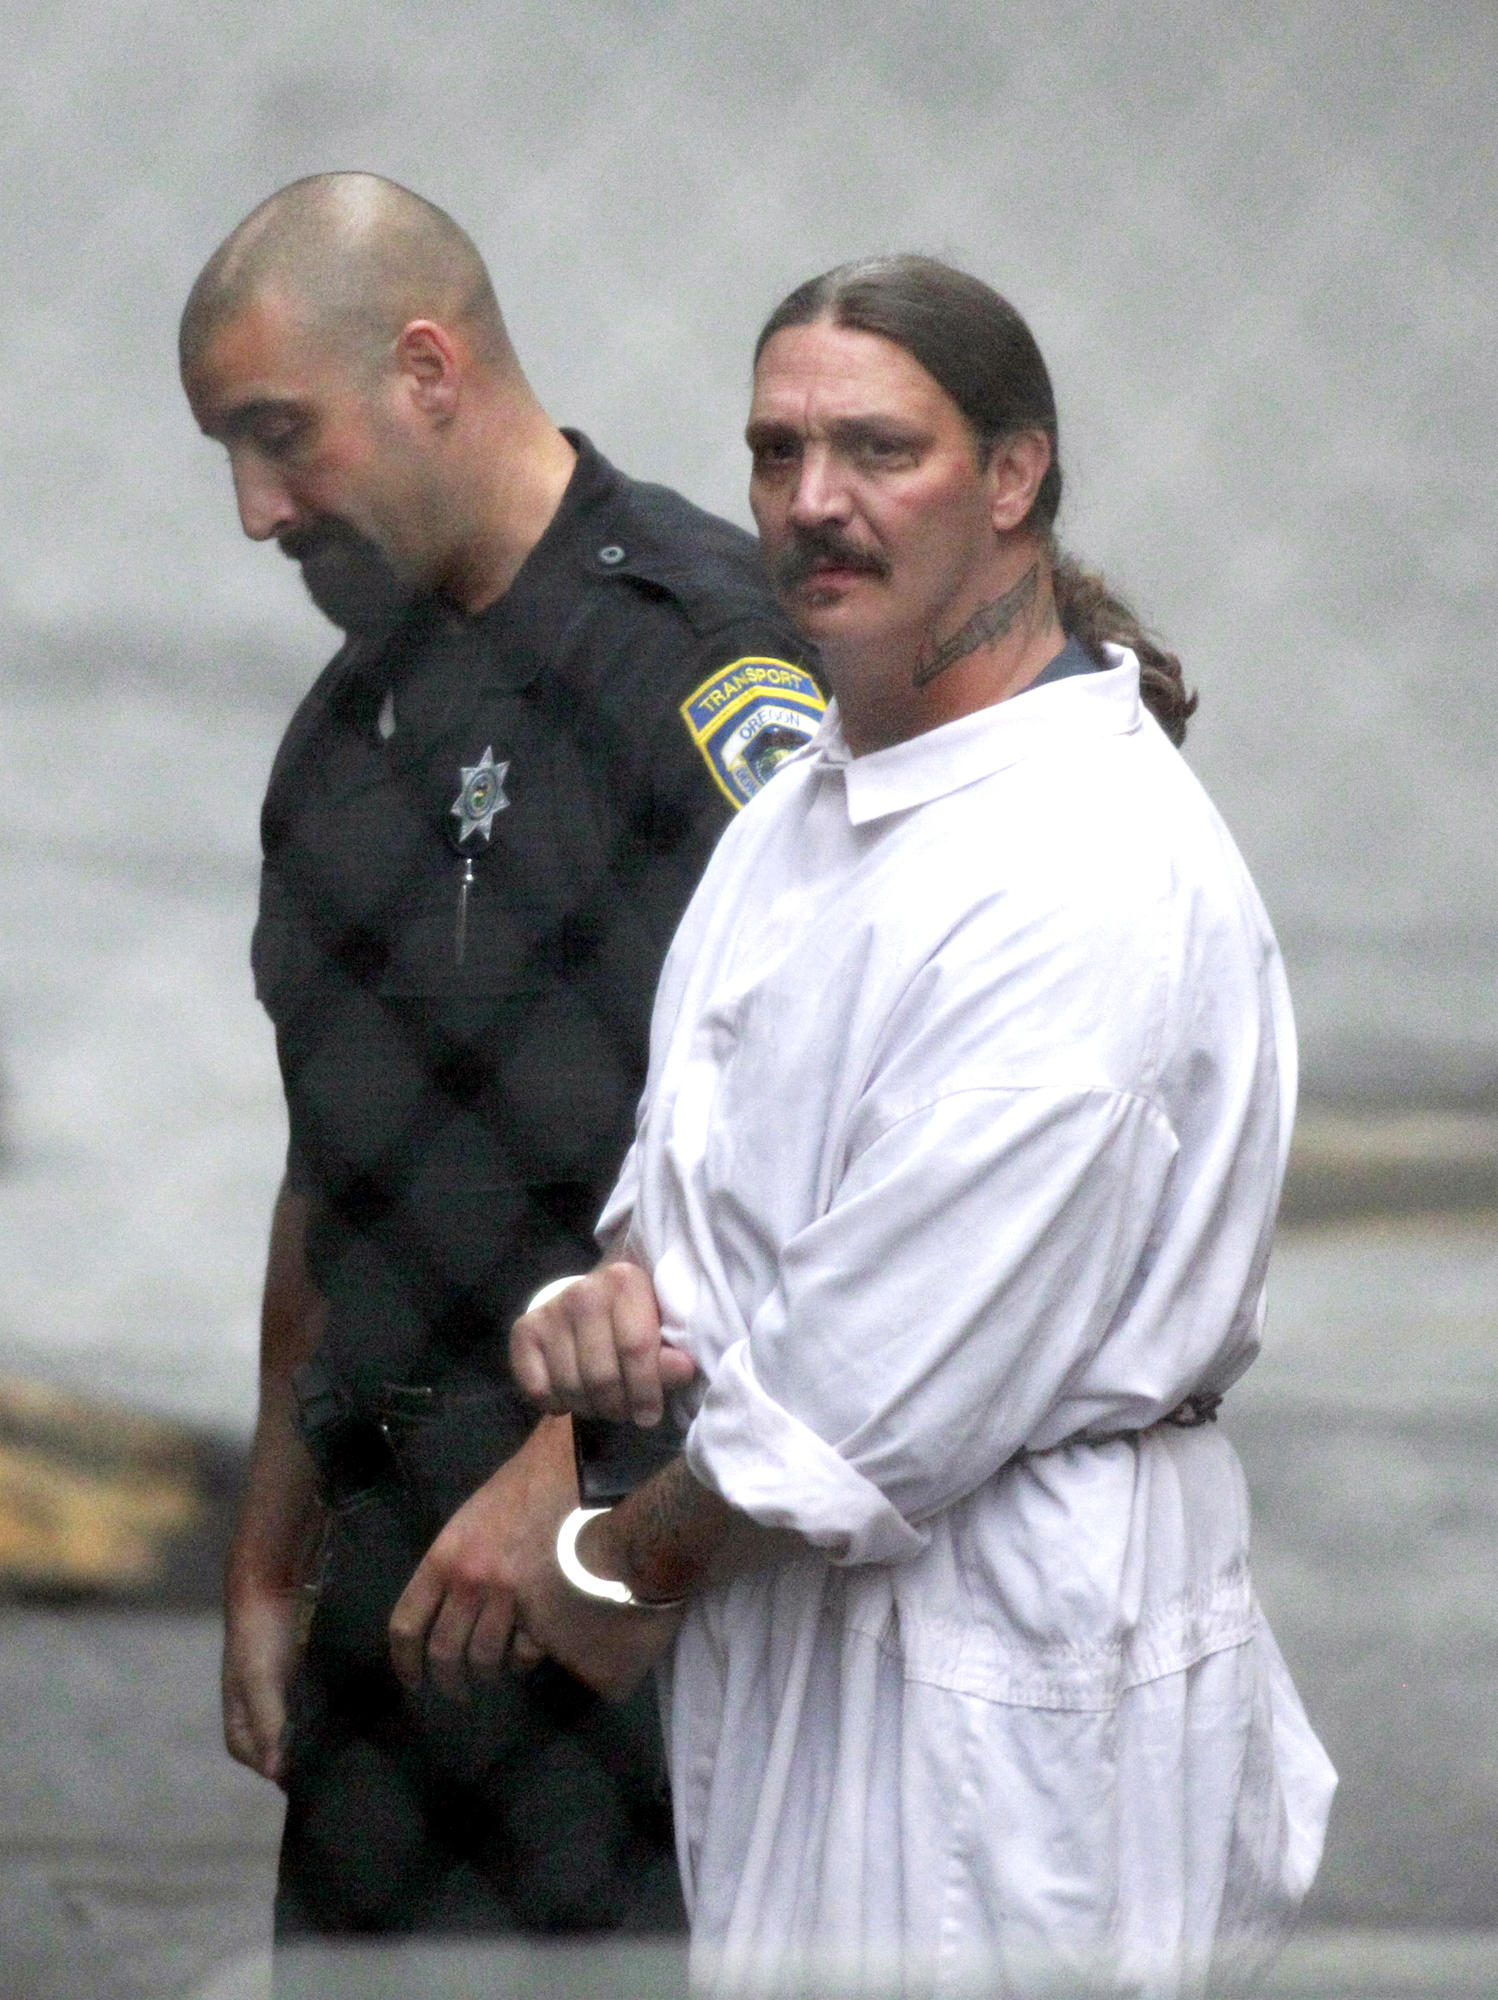 Death Row Inmate Fights For Right To Die In Oregon | WAMC